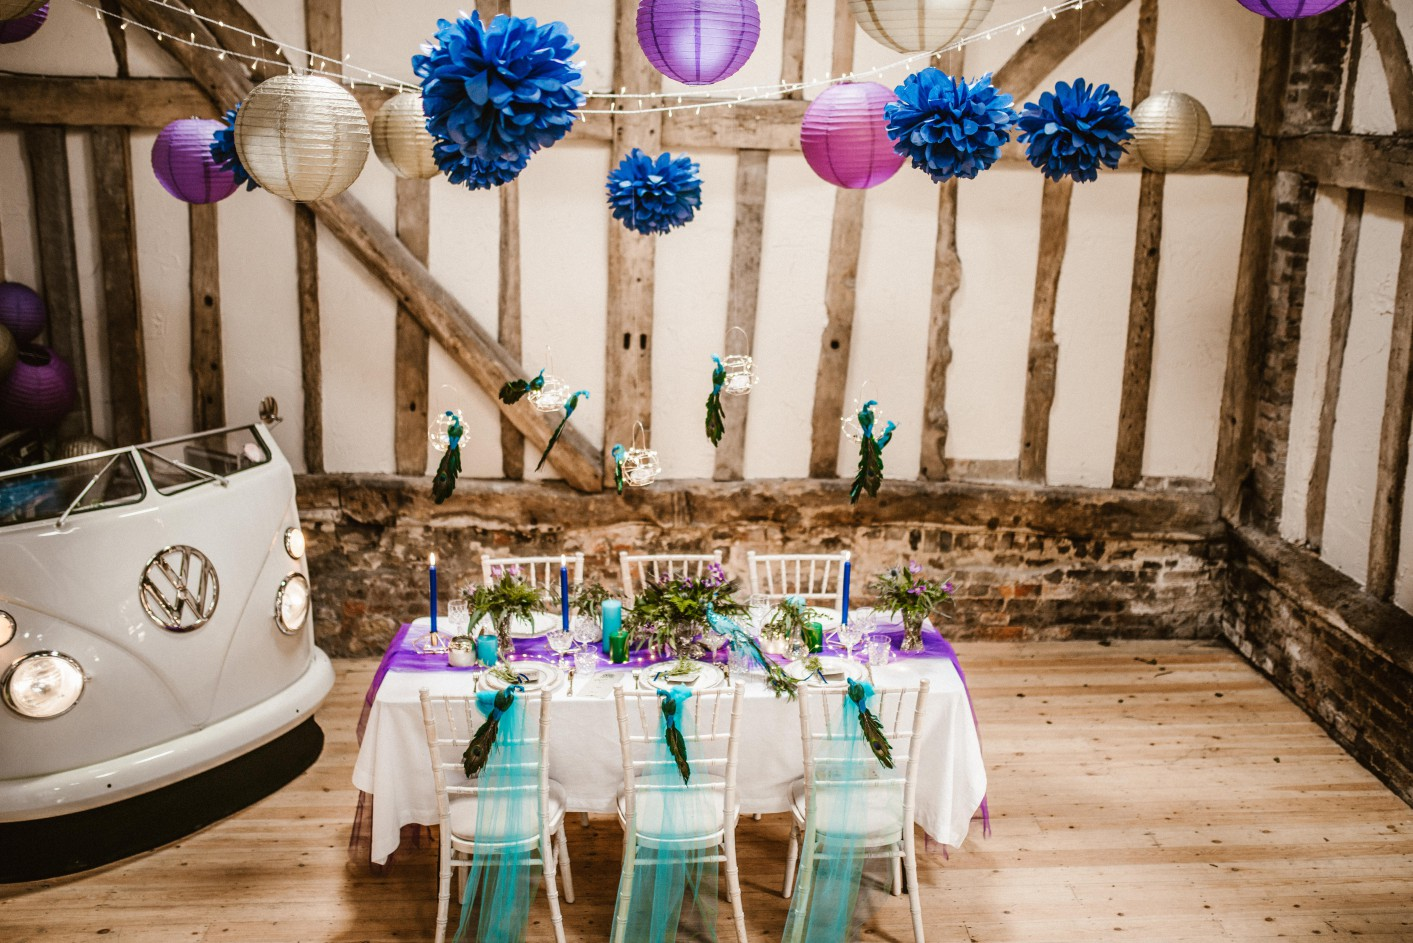 Peacock barns - alternative unconventional wedding photoshoot - rustic decadent - peacock ultraviolet inspired table set up